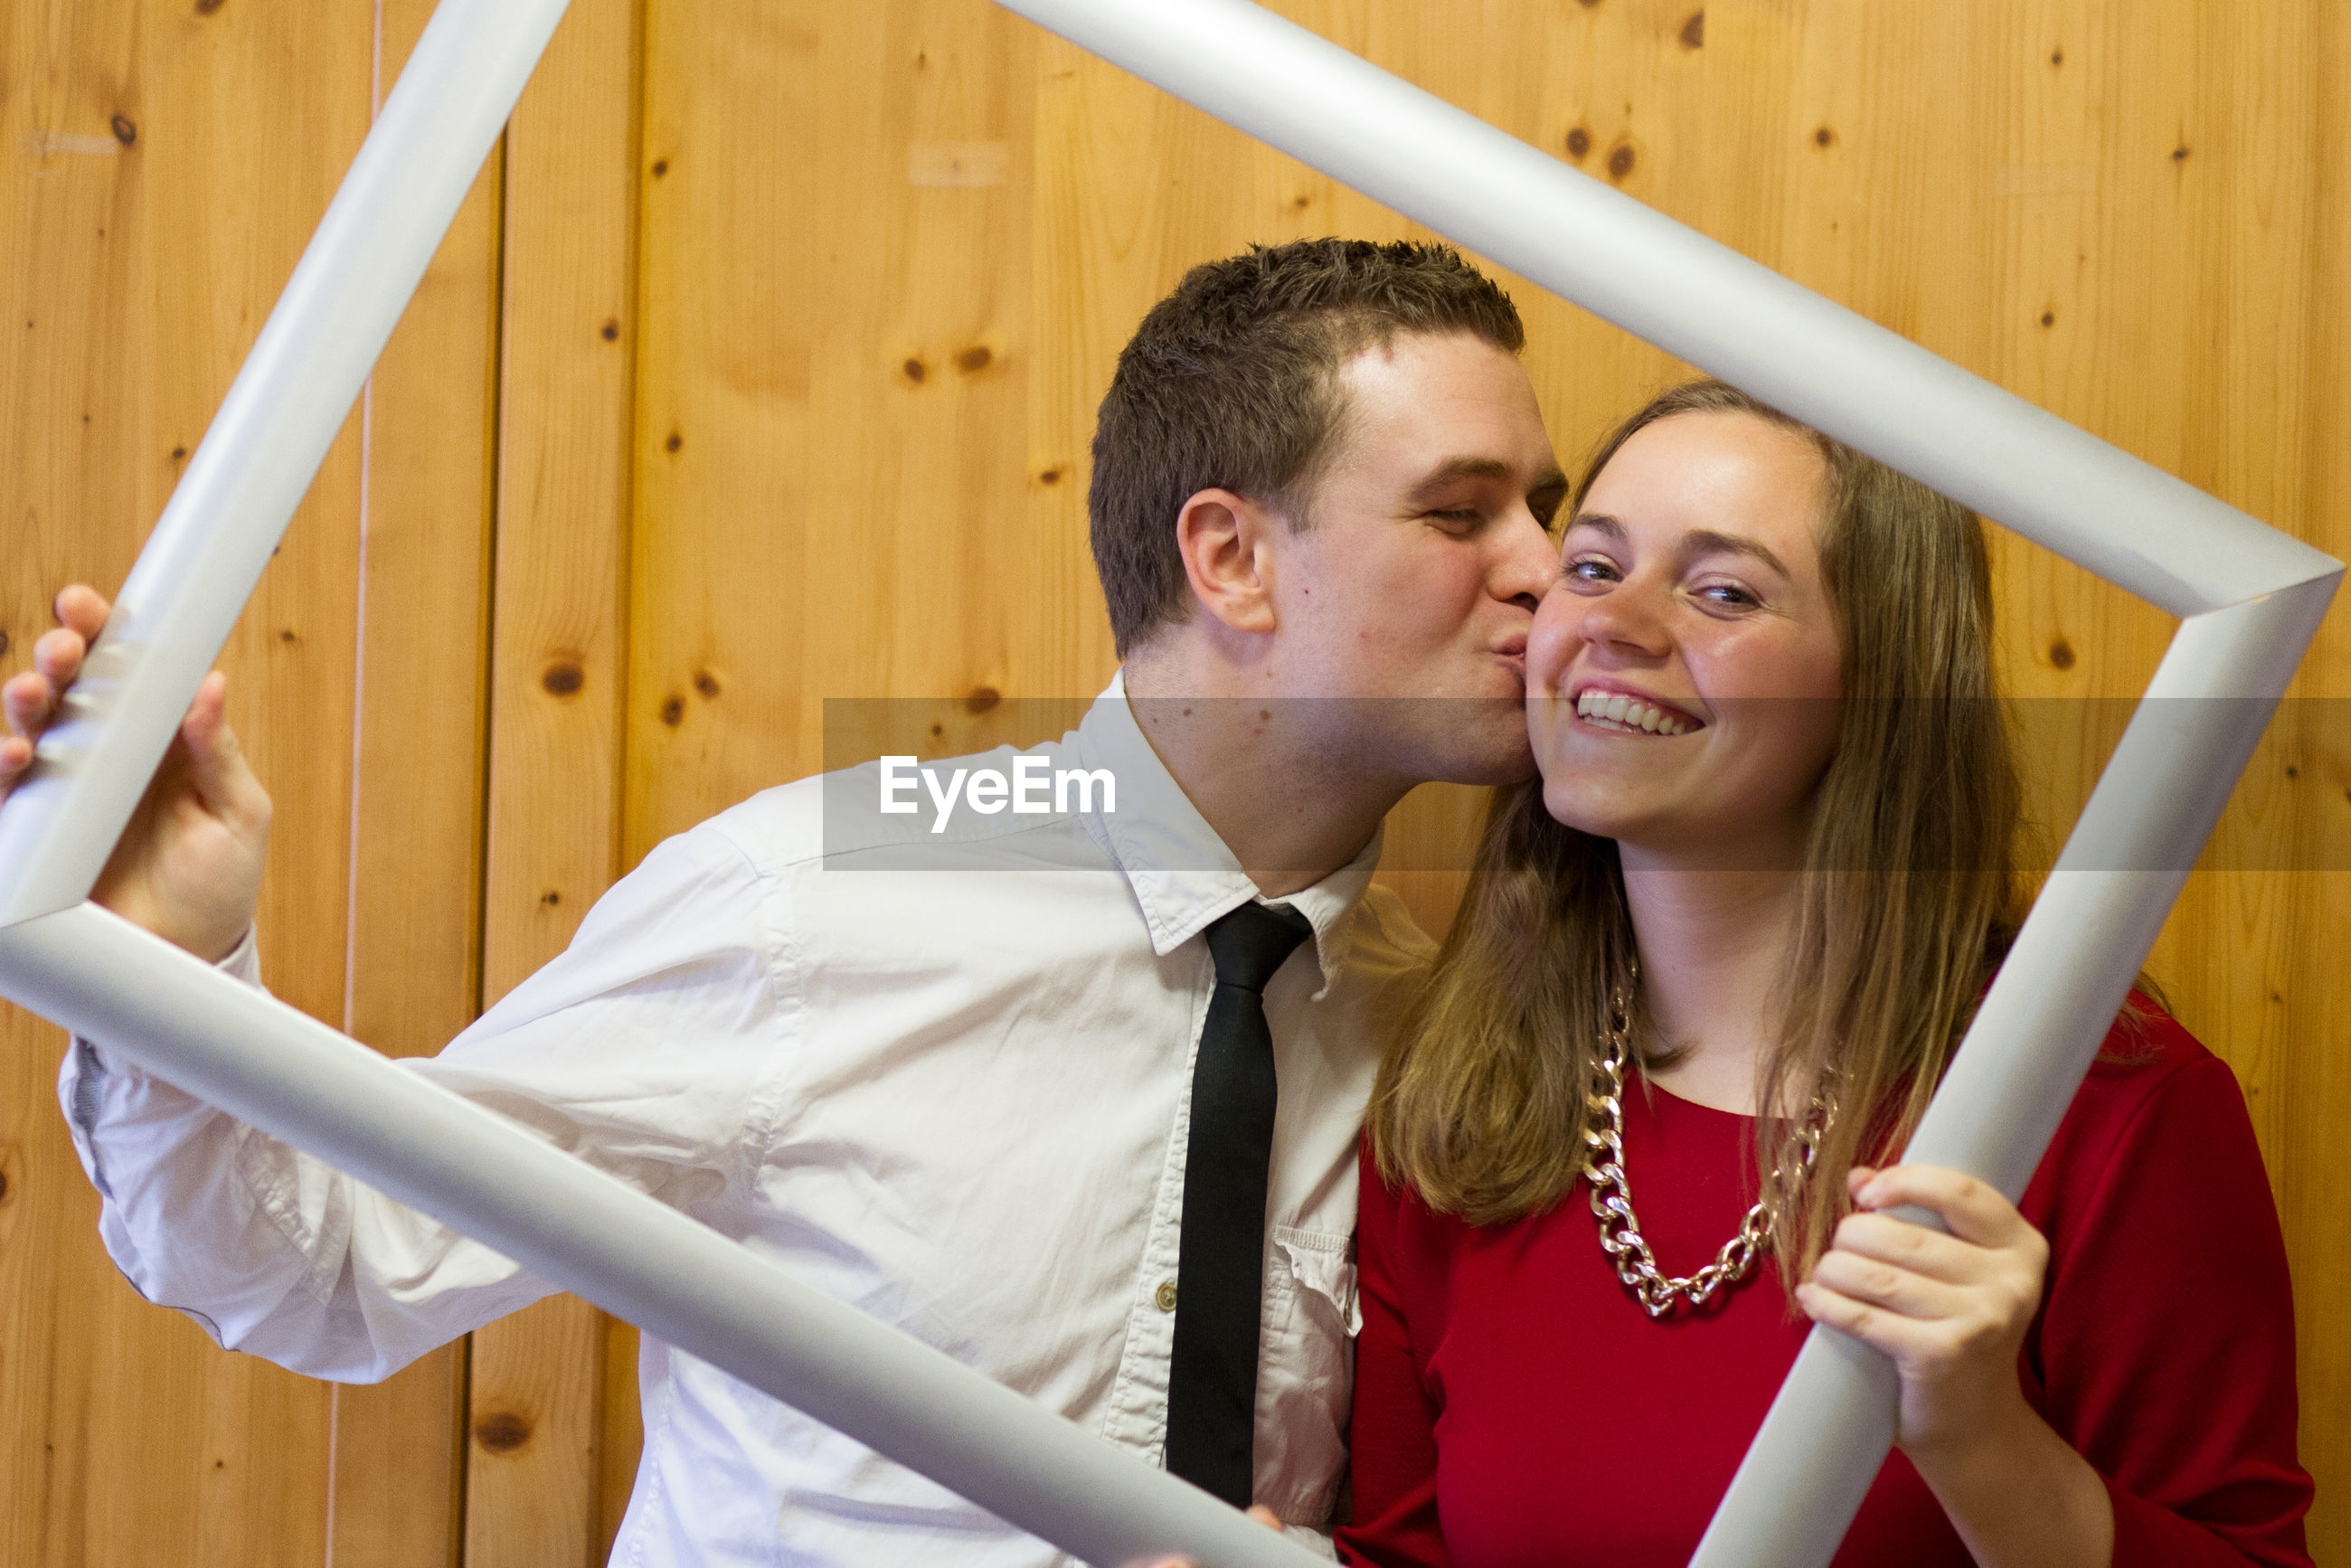 Husband kissing wife while holding picture frame against wooden wall